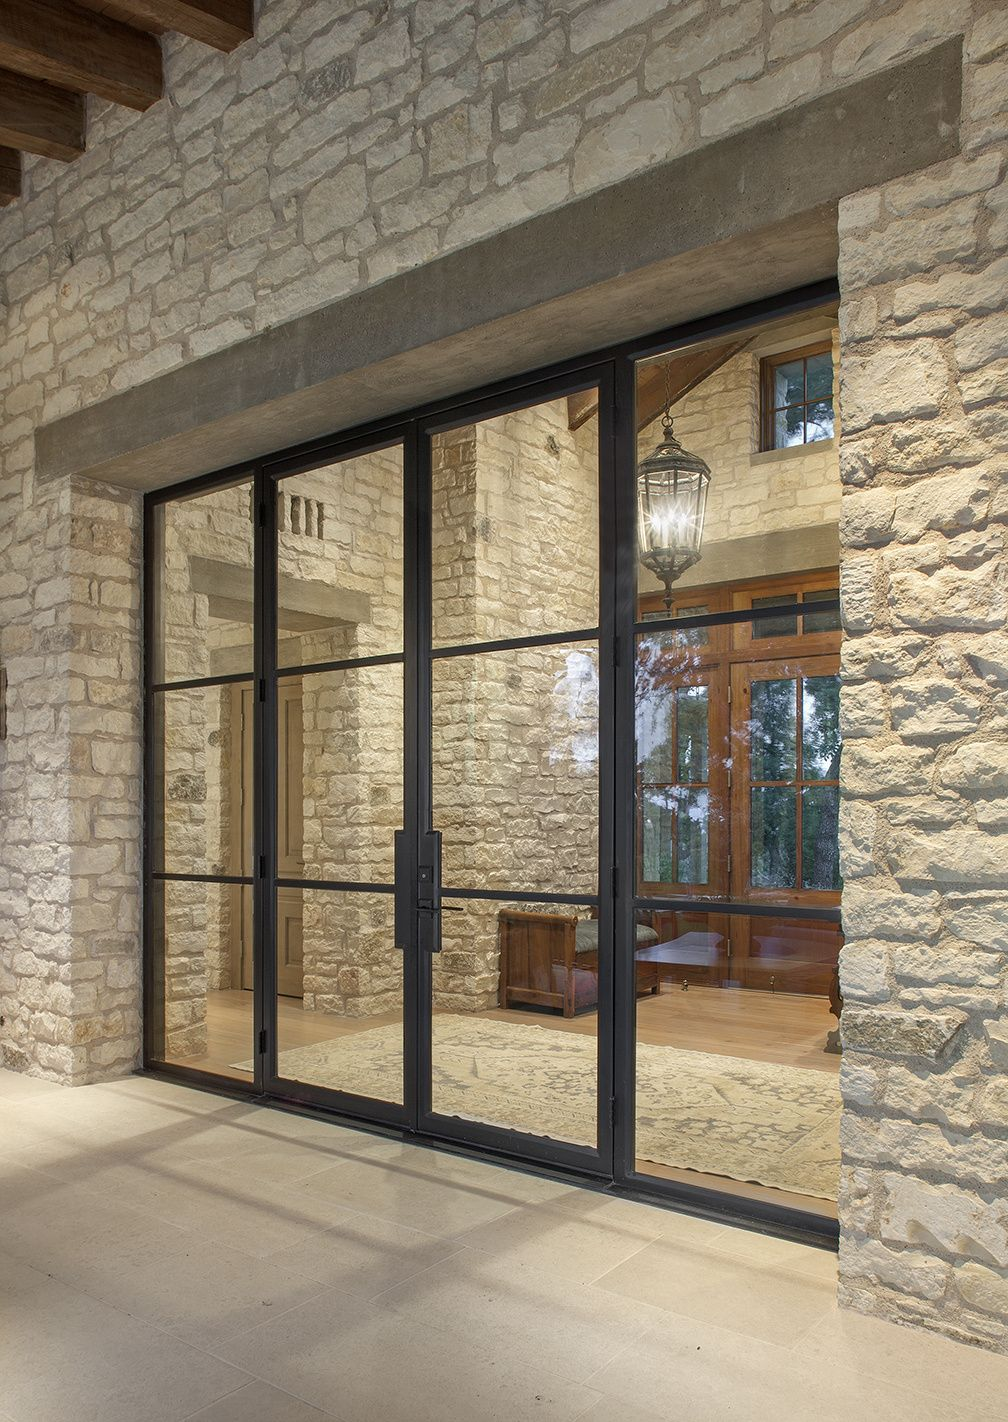 Photo Gallery - Durango Doors & Photo Gallery - Durango Doors | Architecture | Pinterest ... pezcame.com